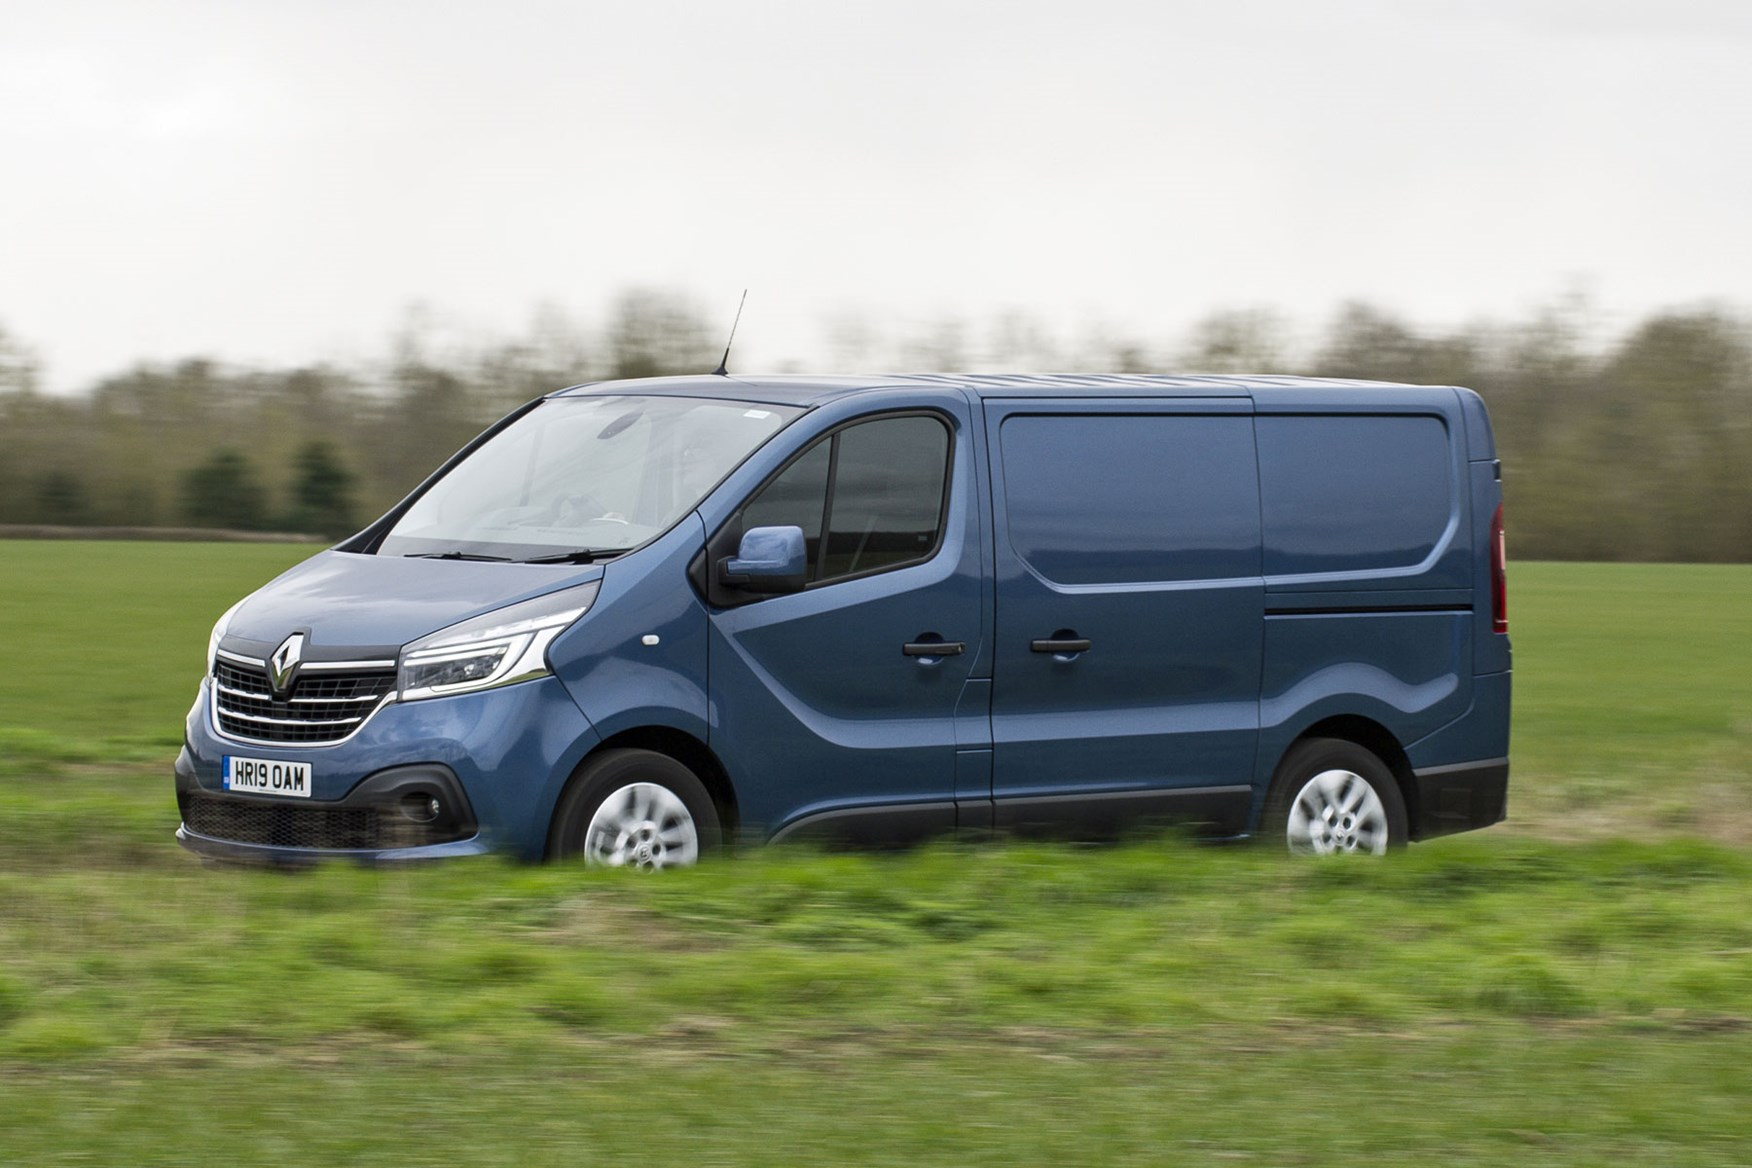 Renault trafic review - facelift, front side view, driving, 2020, blue